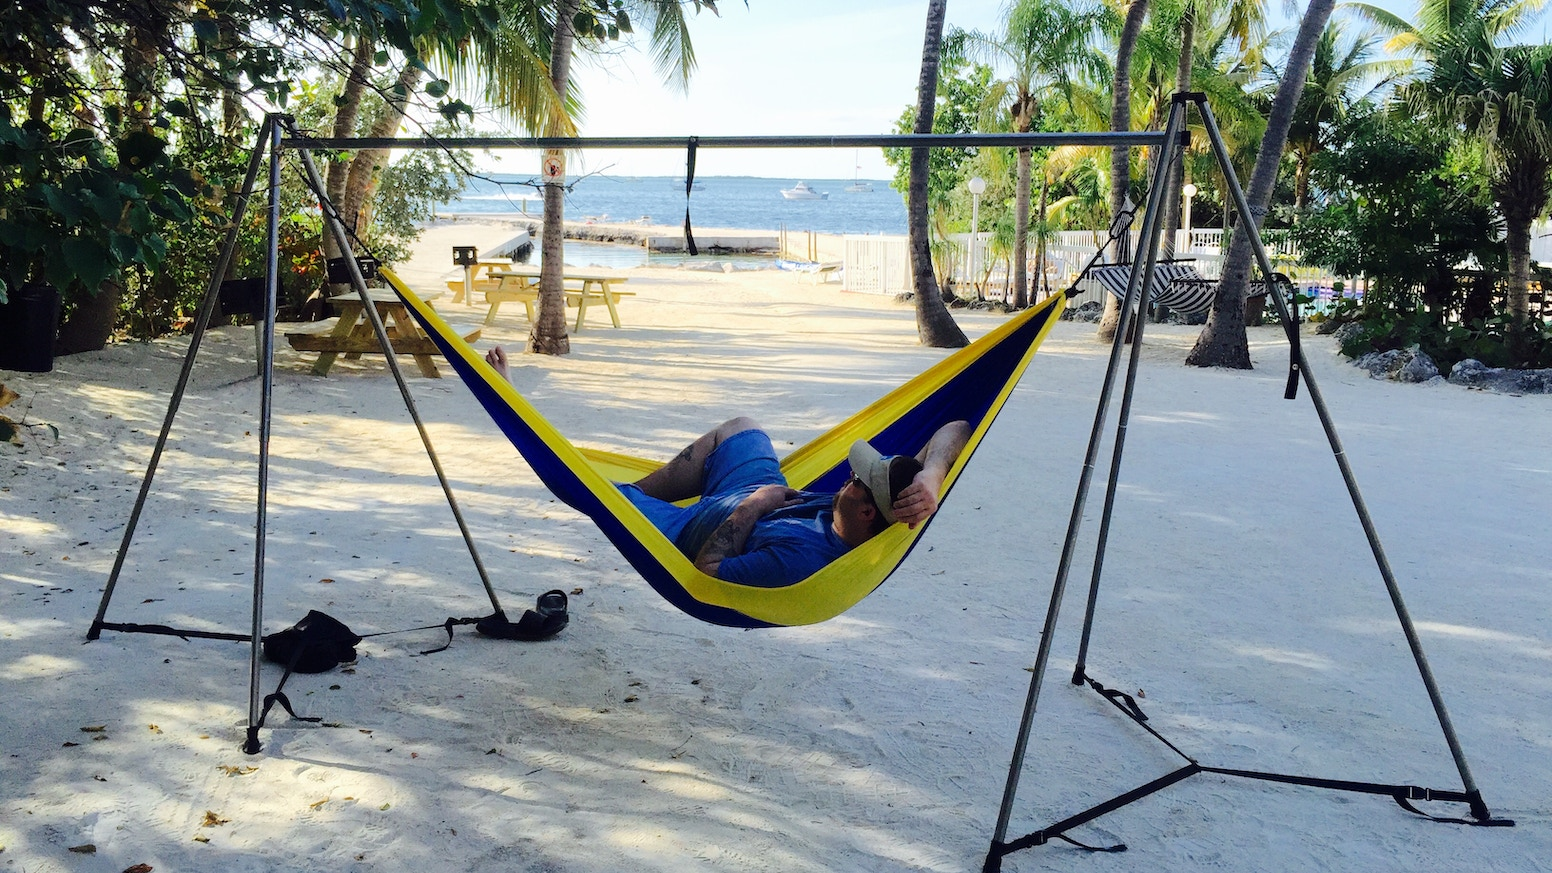 You can Hammock Anywhere now with the worlds strongest, easiest and lightest portable hammock stand!We are continuing pre-sales on our website. Please click the link below.